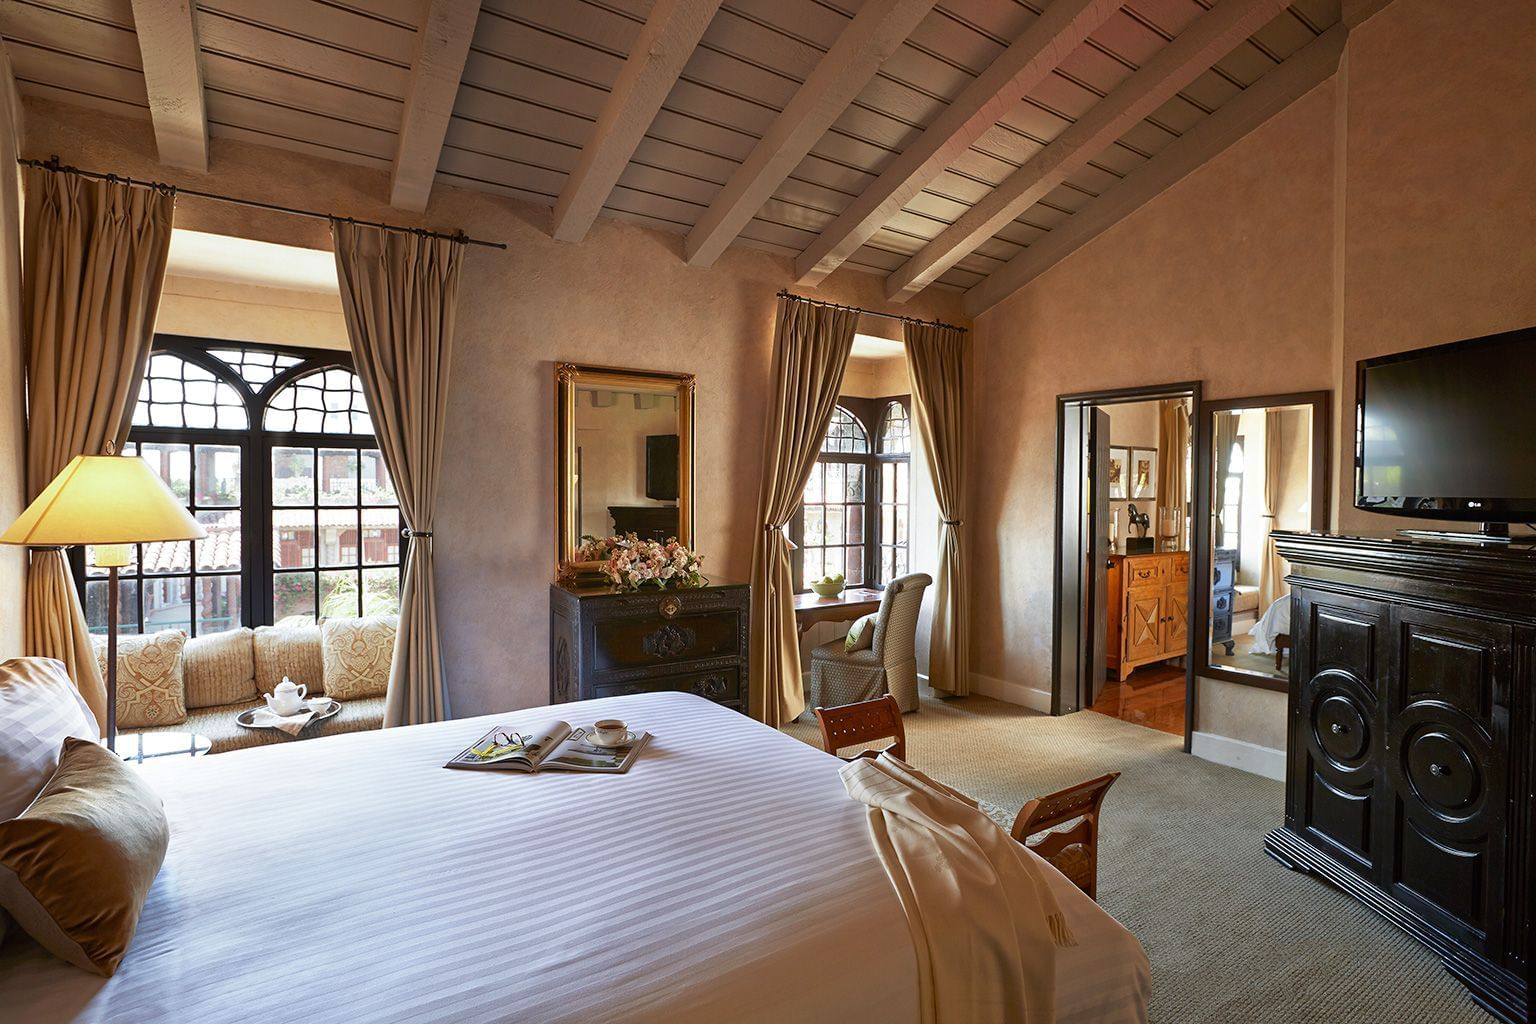 room at Mission Inn with bed, dresser and television